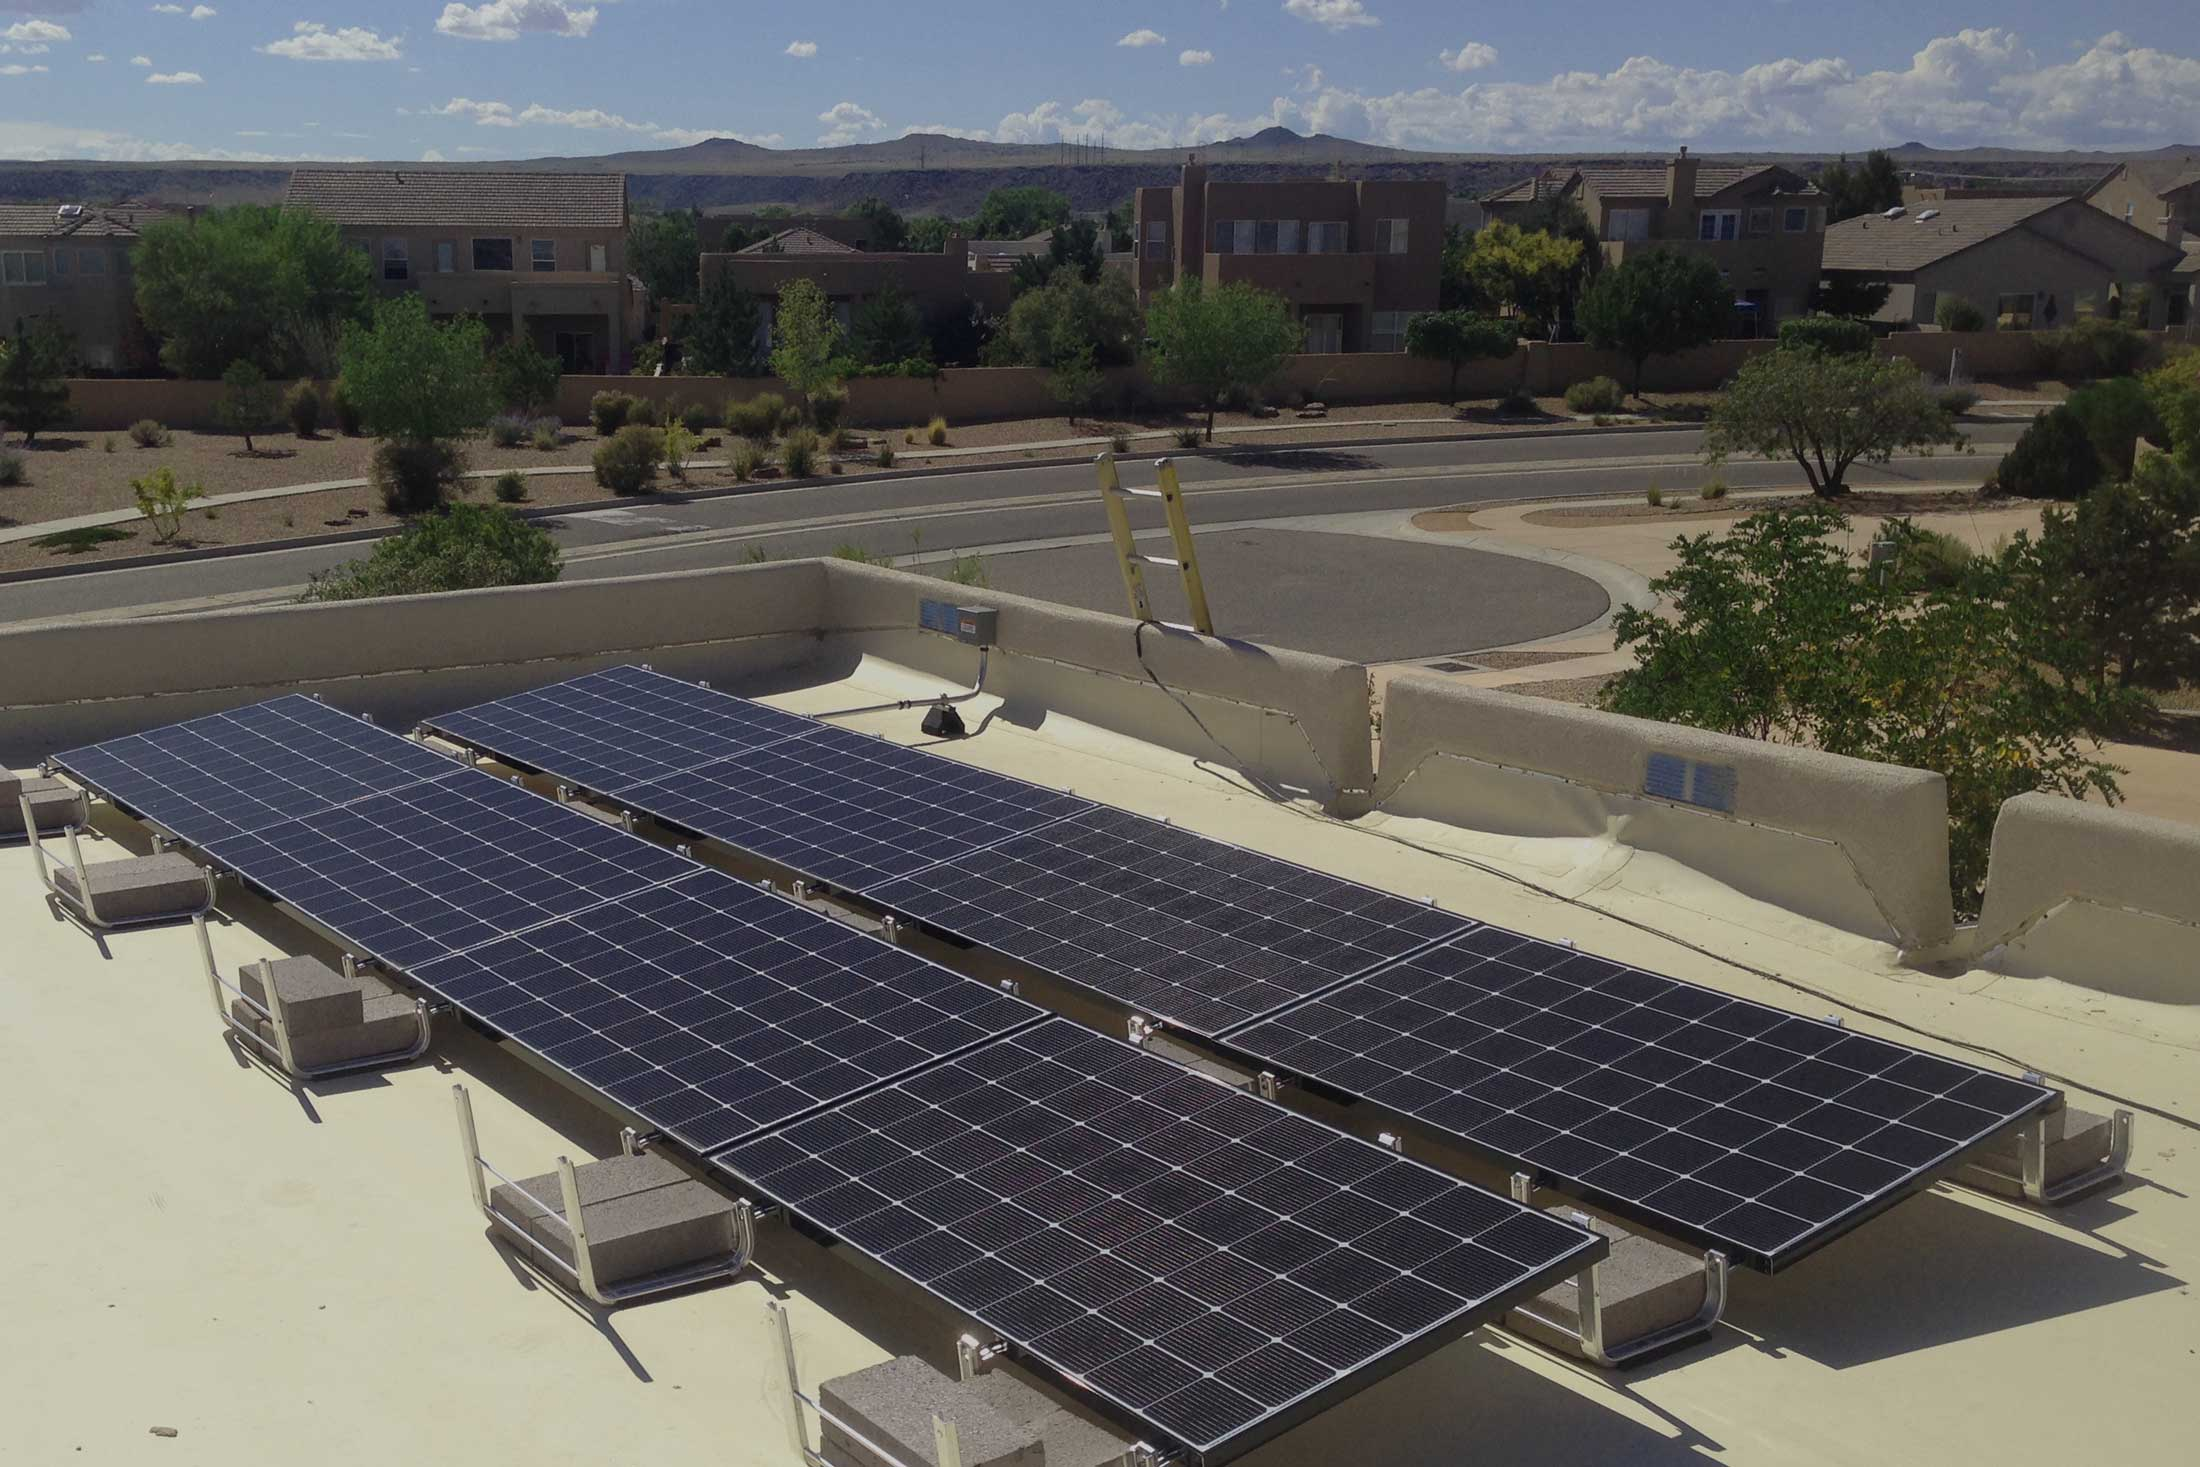 Select Solar is focused on designing and installing high quality, durable solar electric systems for residential, commercial and industrial customers